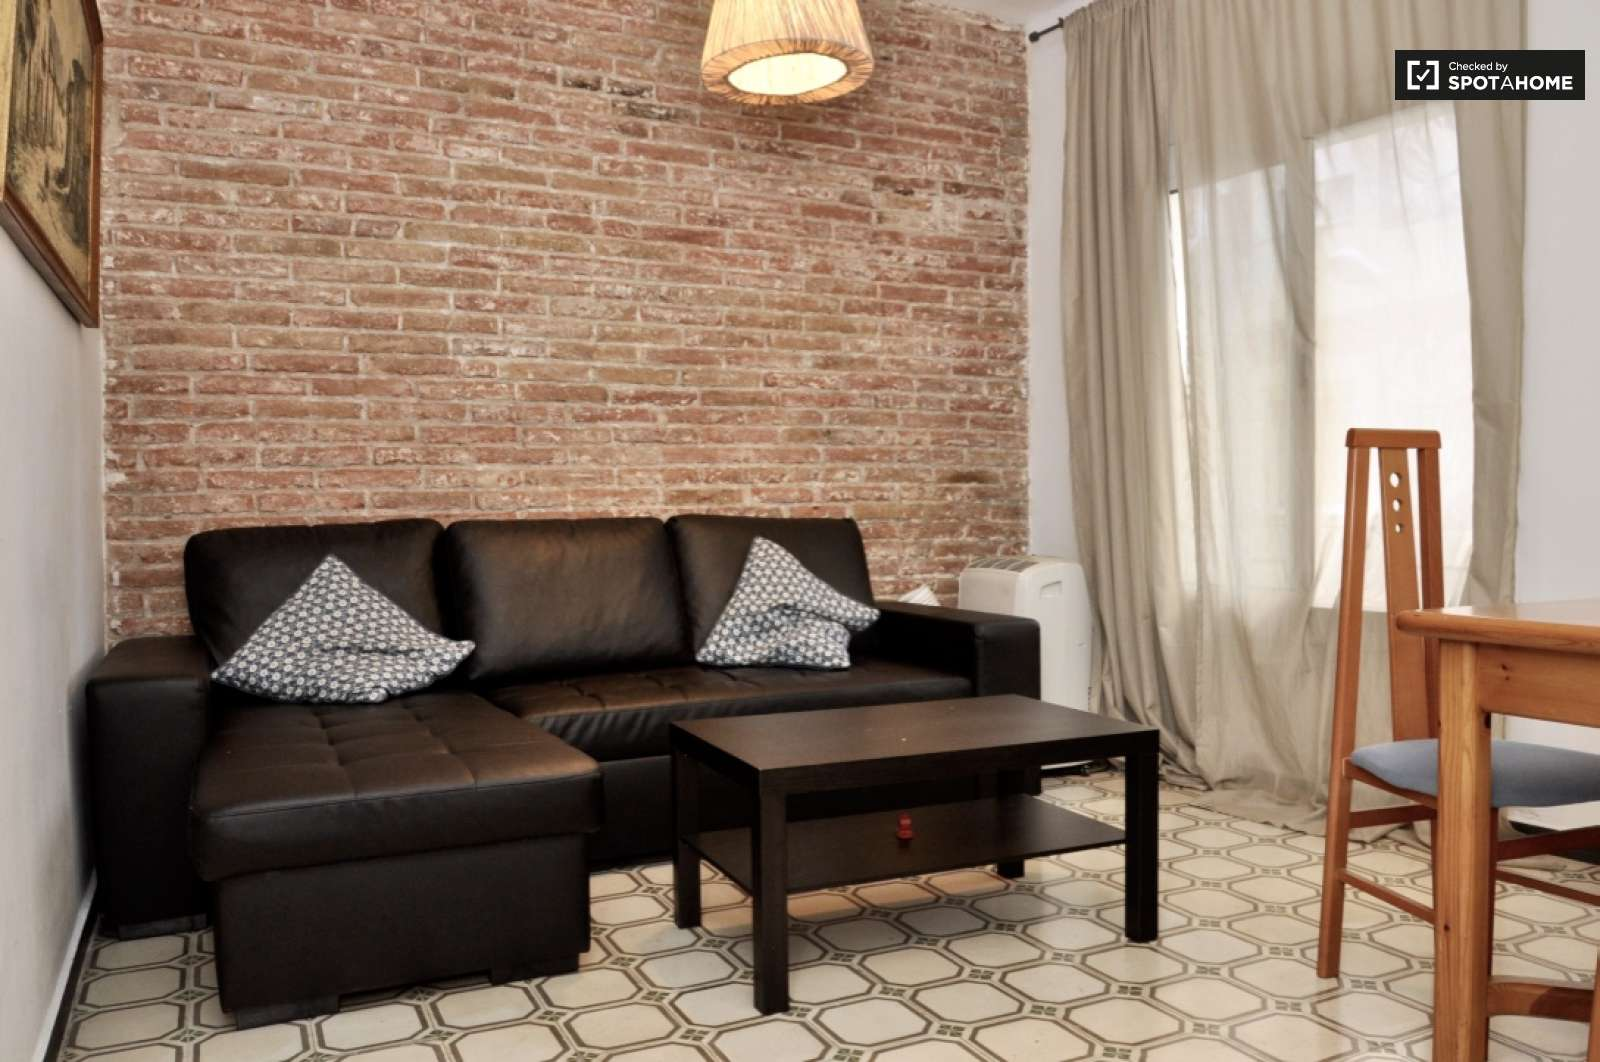 2 Bedroom Apartment For Rent In Poble Sec Barcelona Ref 143791  # Muebles Poble Sec